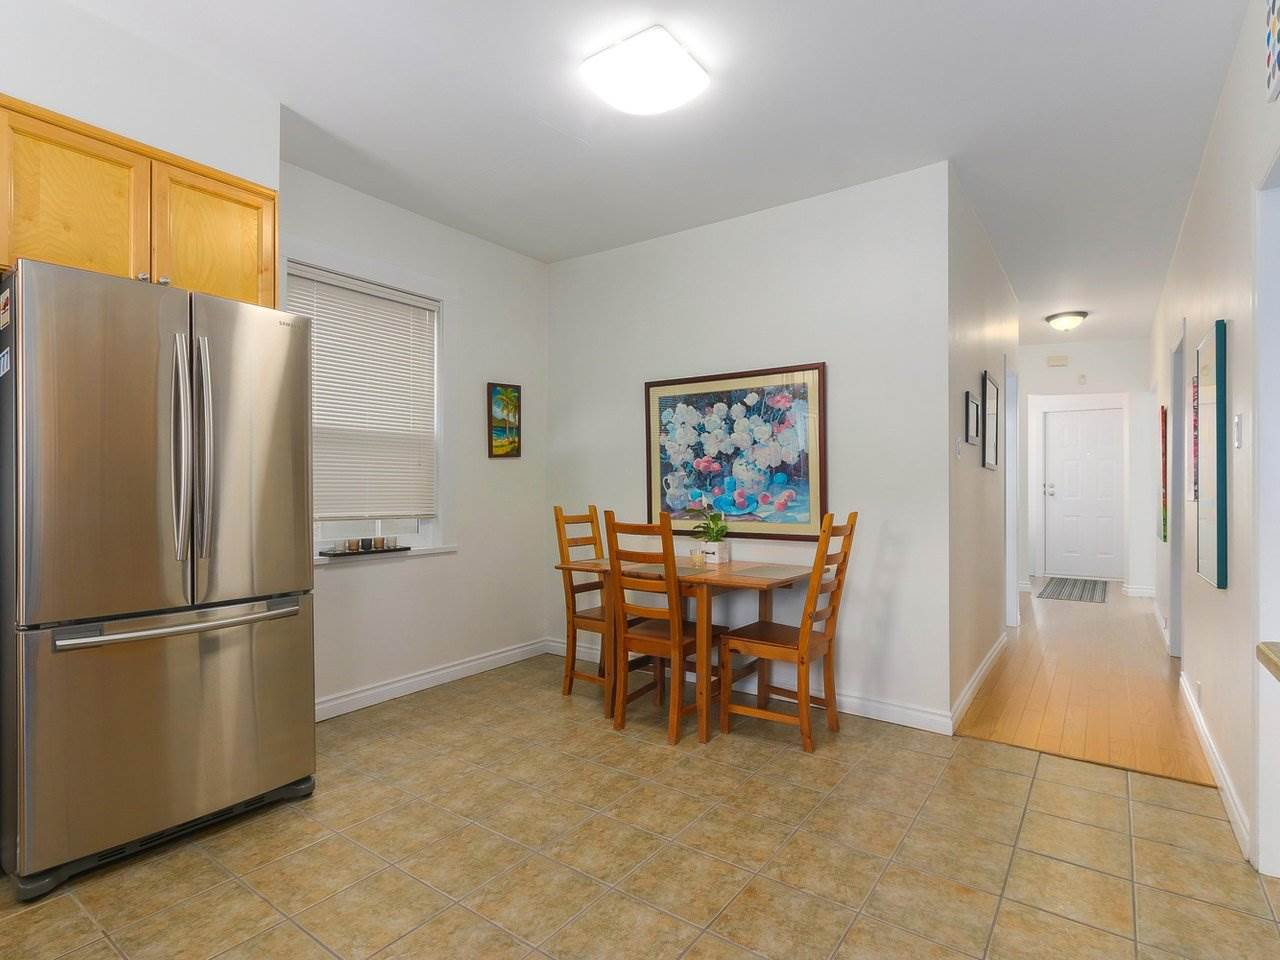 """Photo 5: Photos: 2610 W 10TH Avenue in Vancouver: Kitsilano House for sale in """"Kitsilano"""" (Vancouver West)  : MLS®# R2471992"""